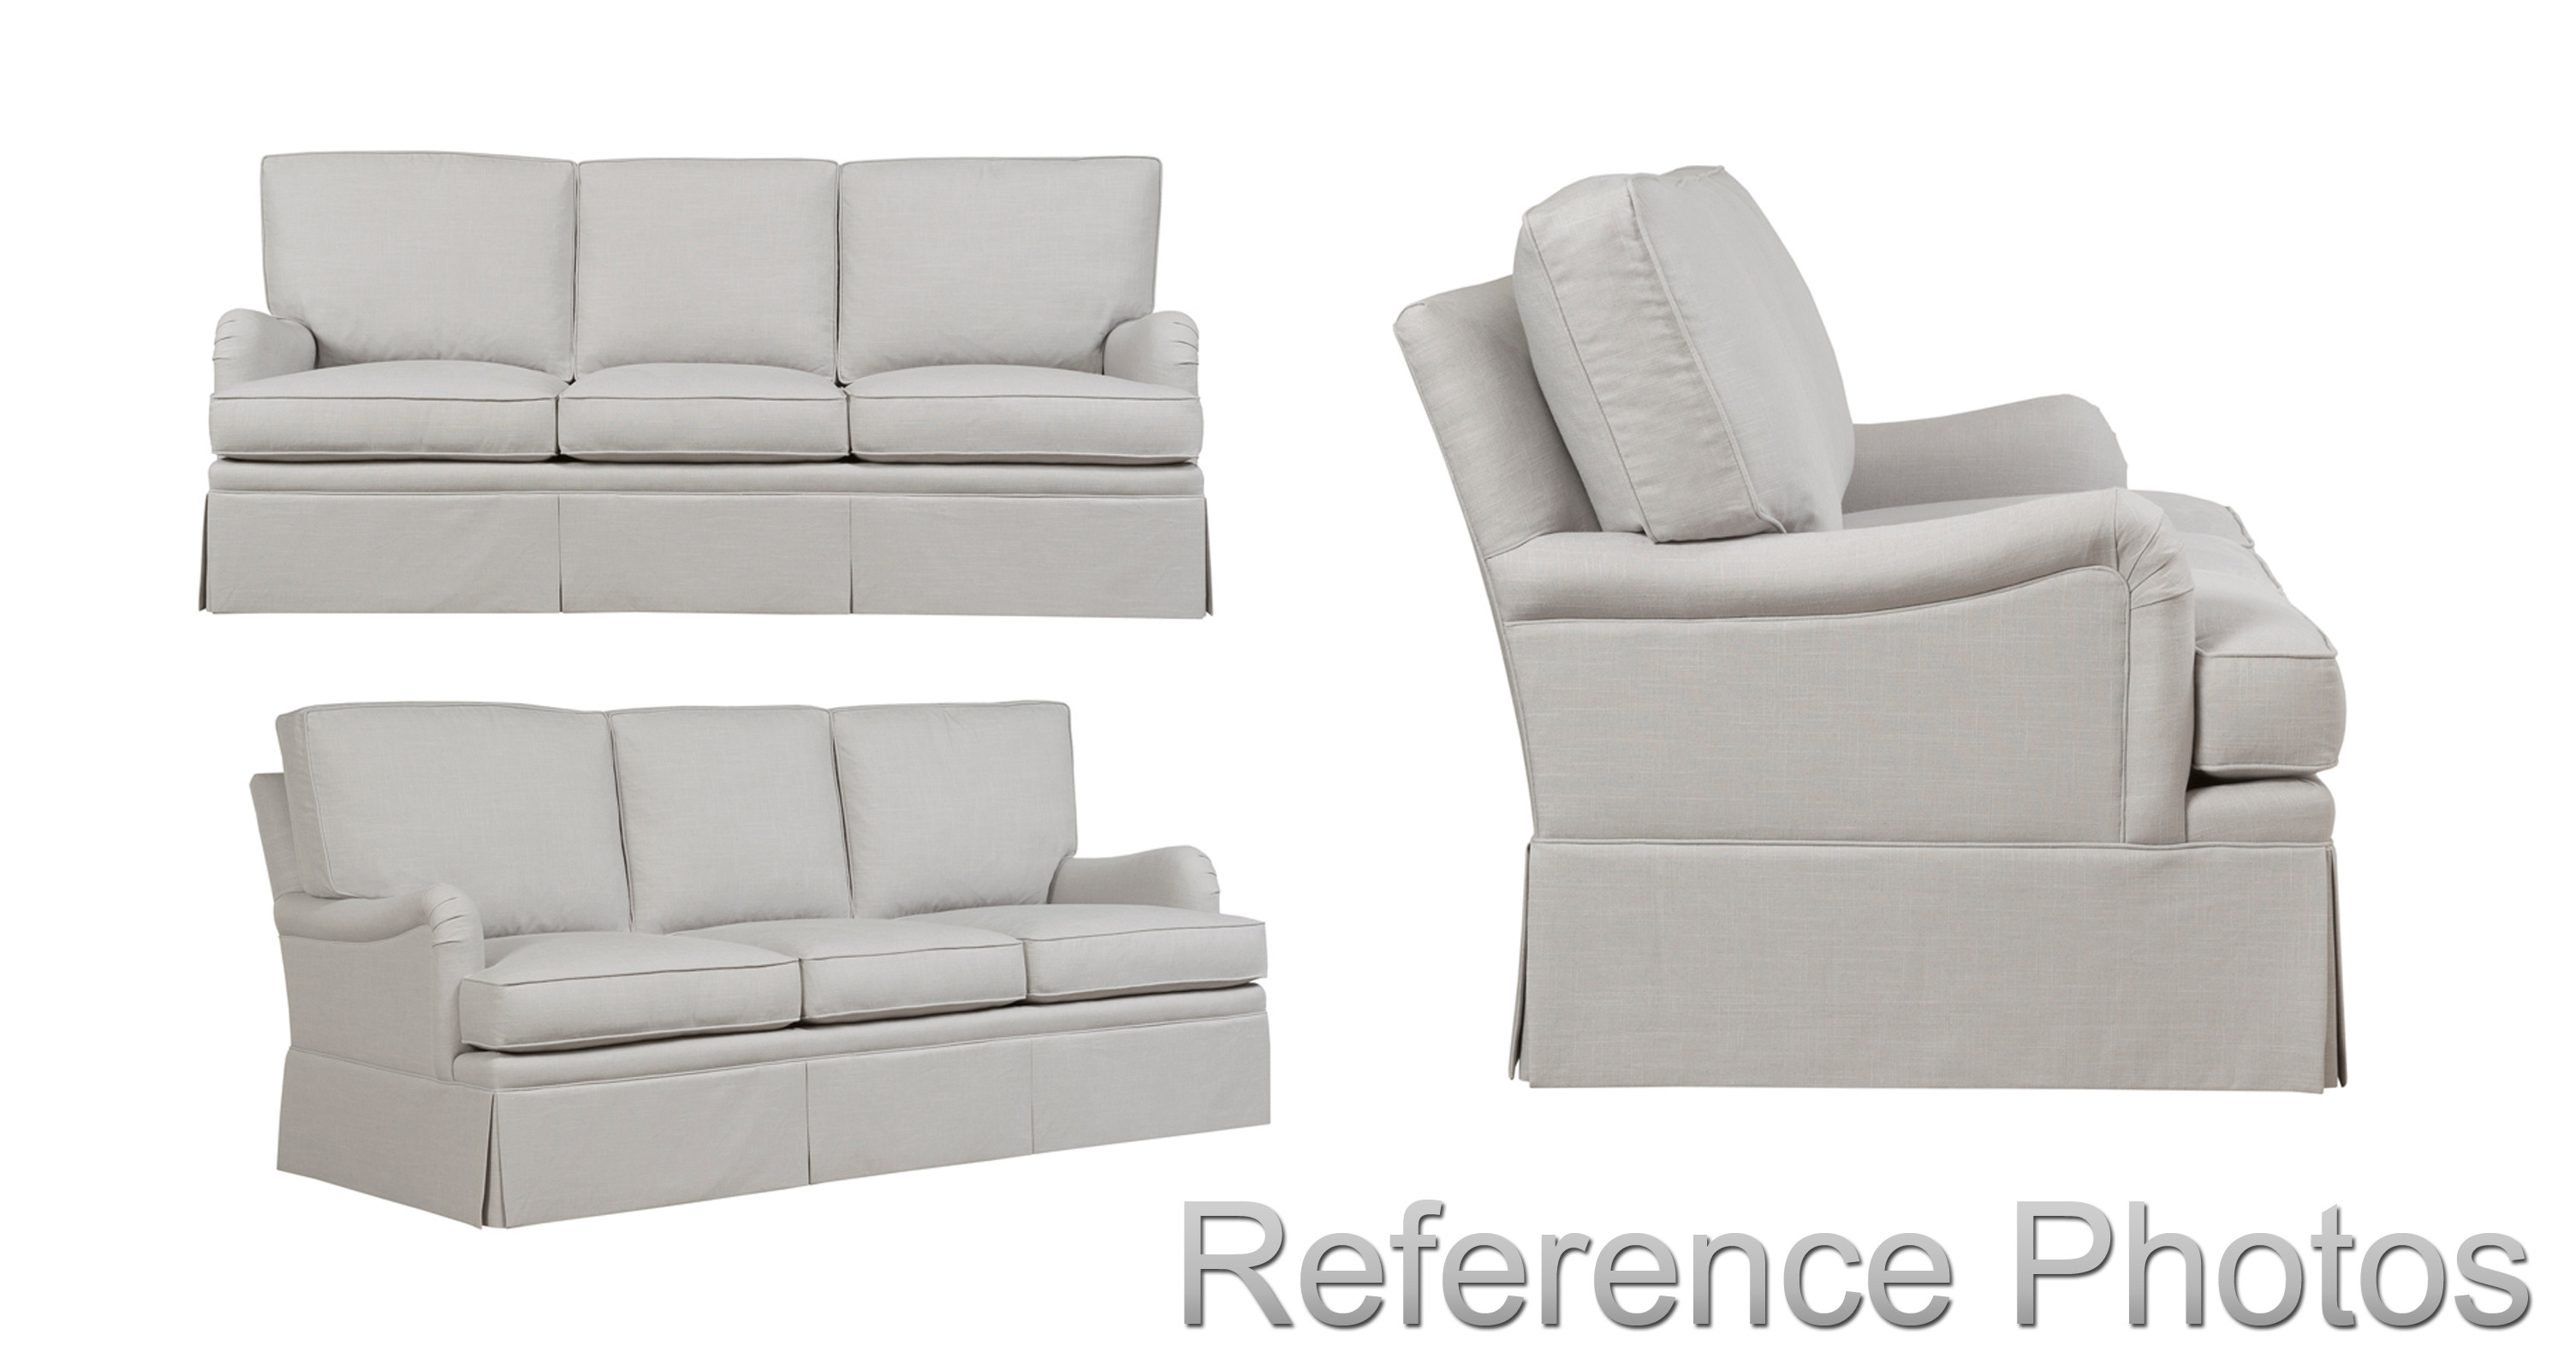 Sofa Style 1 reference photographs provided by Duralee.